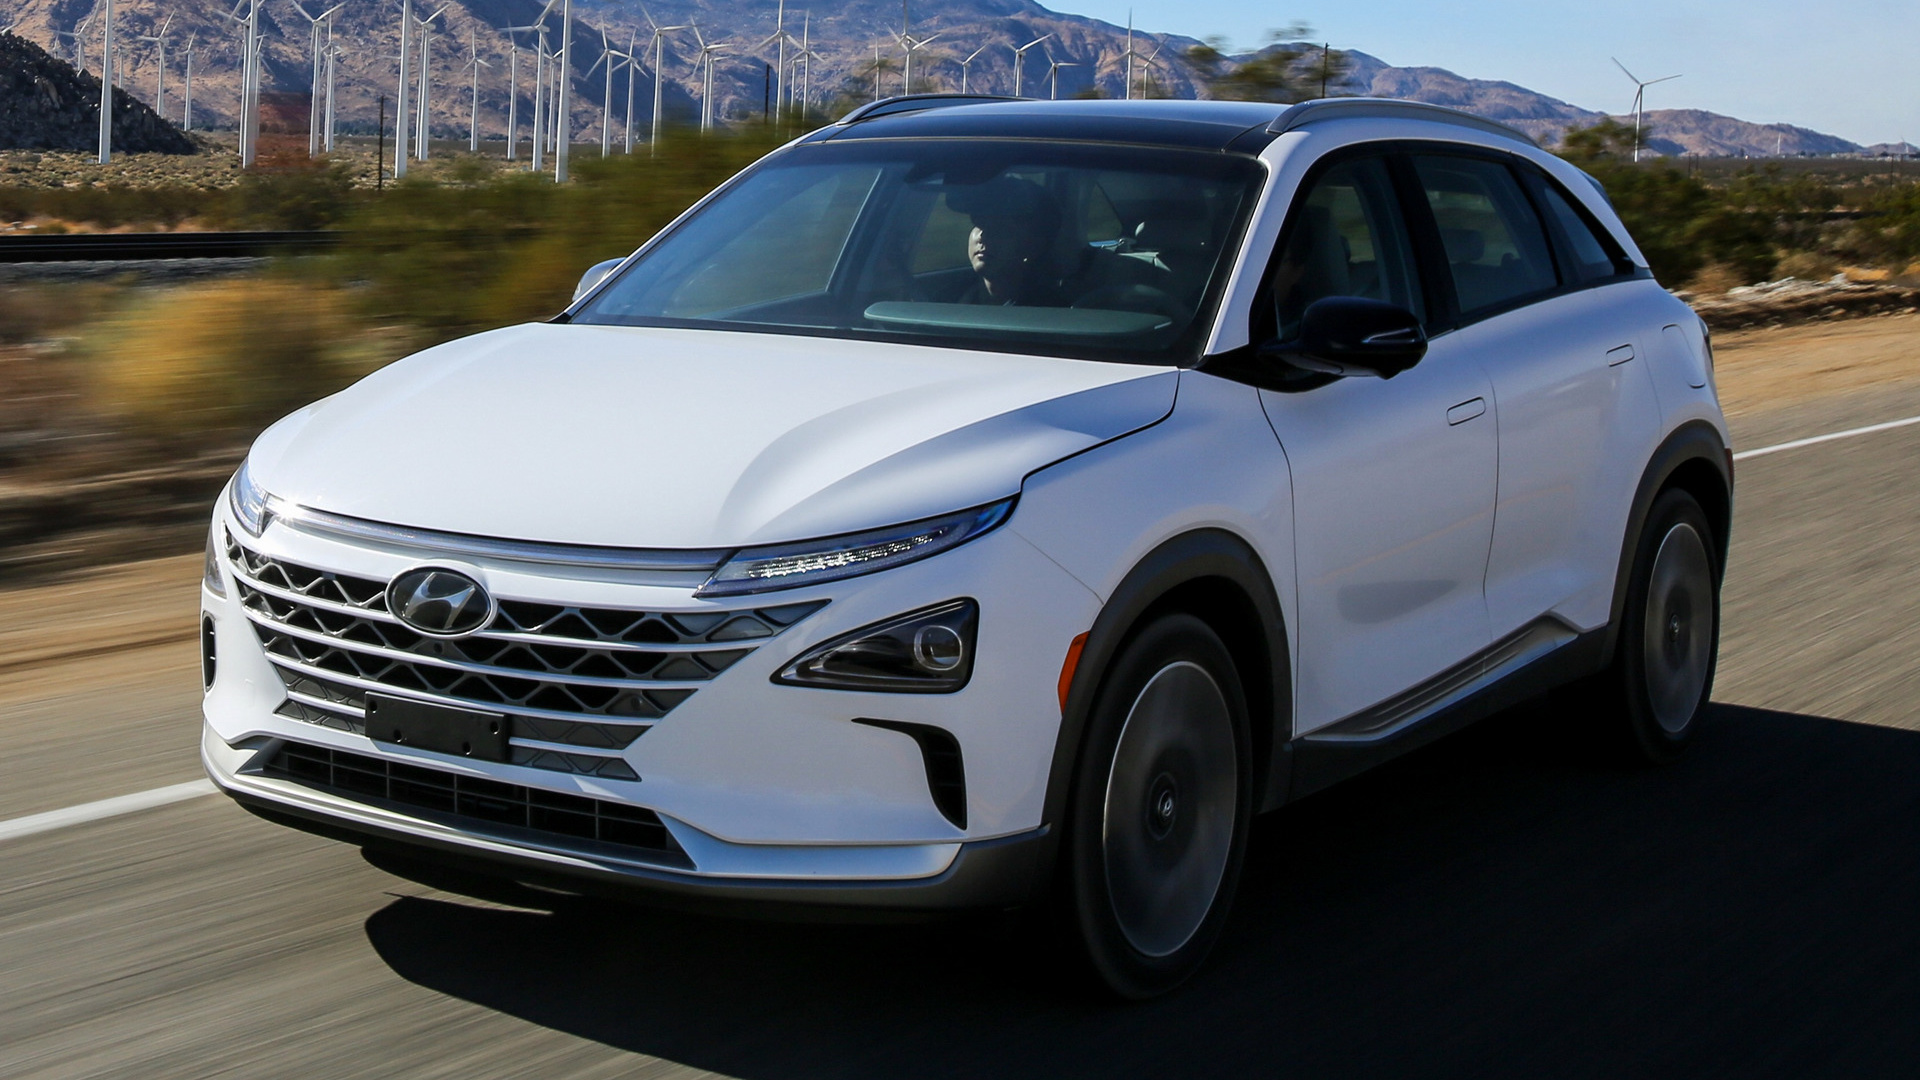 2019 Hyundai Nexo US   Wallpapers and HD Images Car Pixel 1920x1080